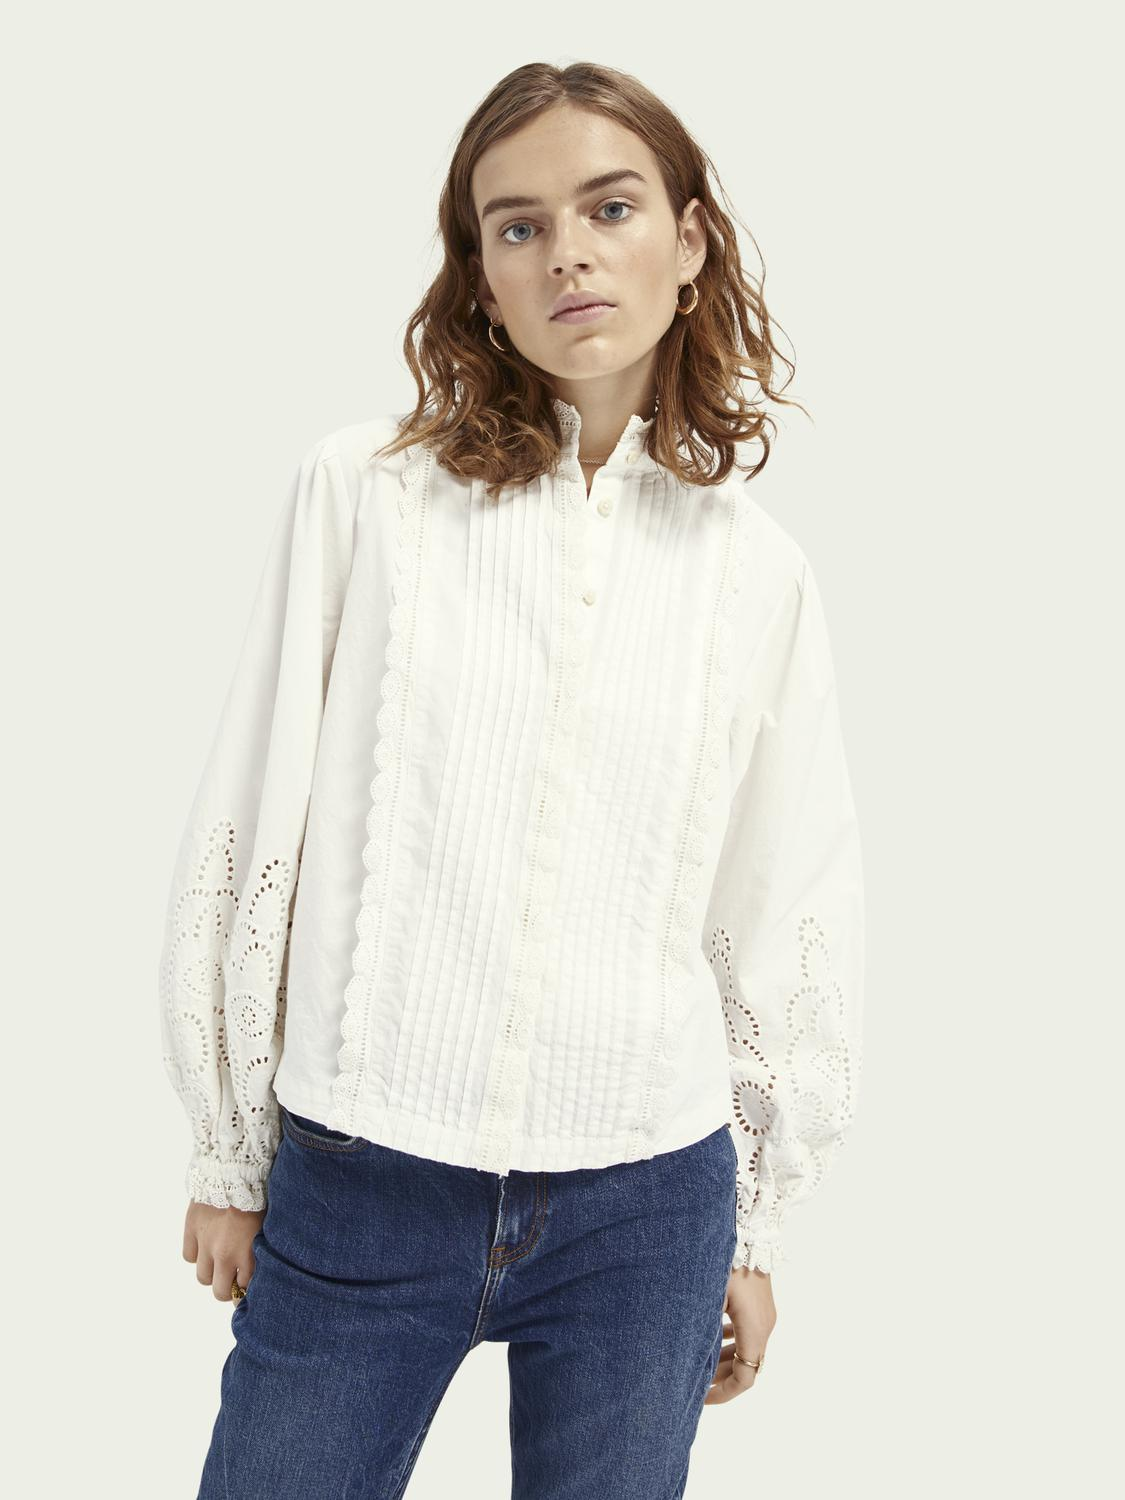 Broderie anglaise detail top